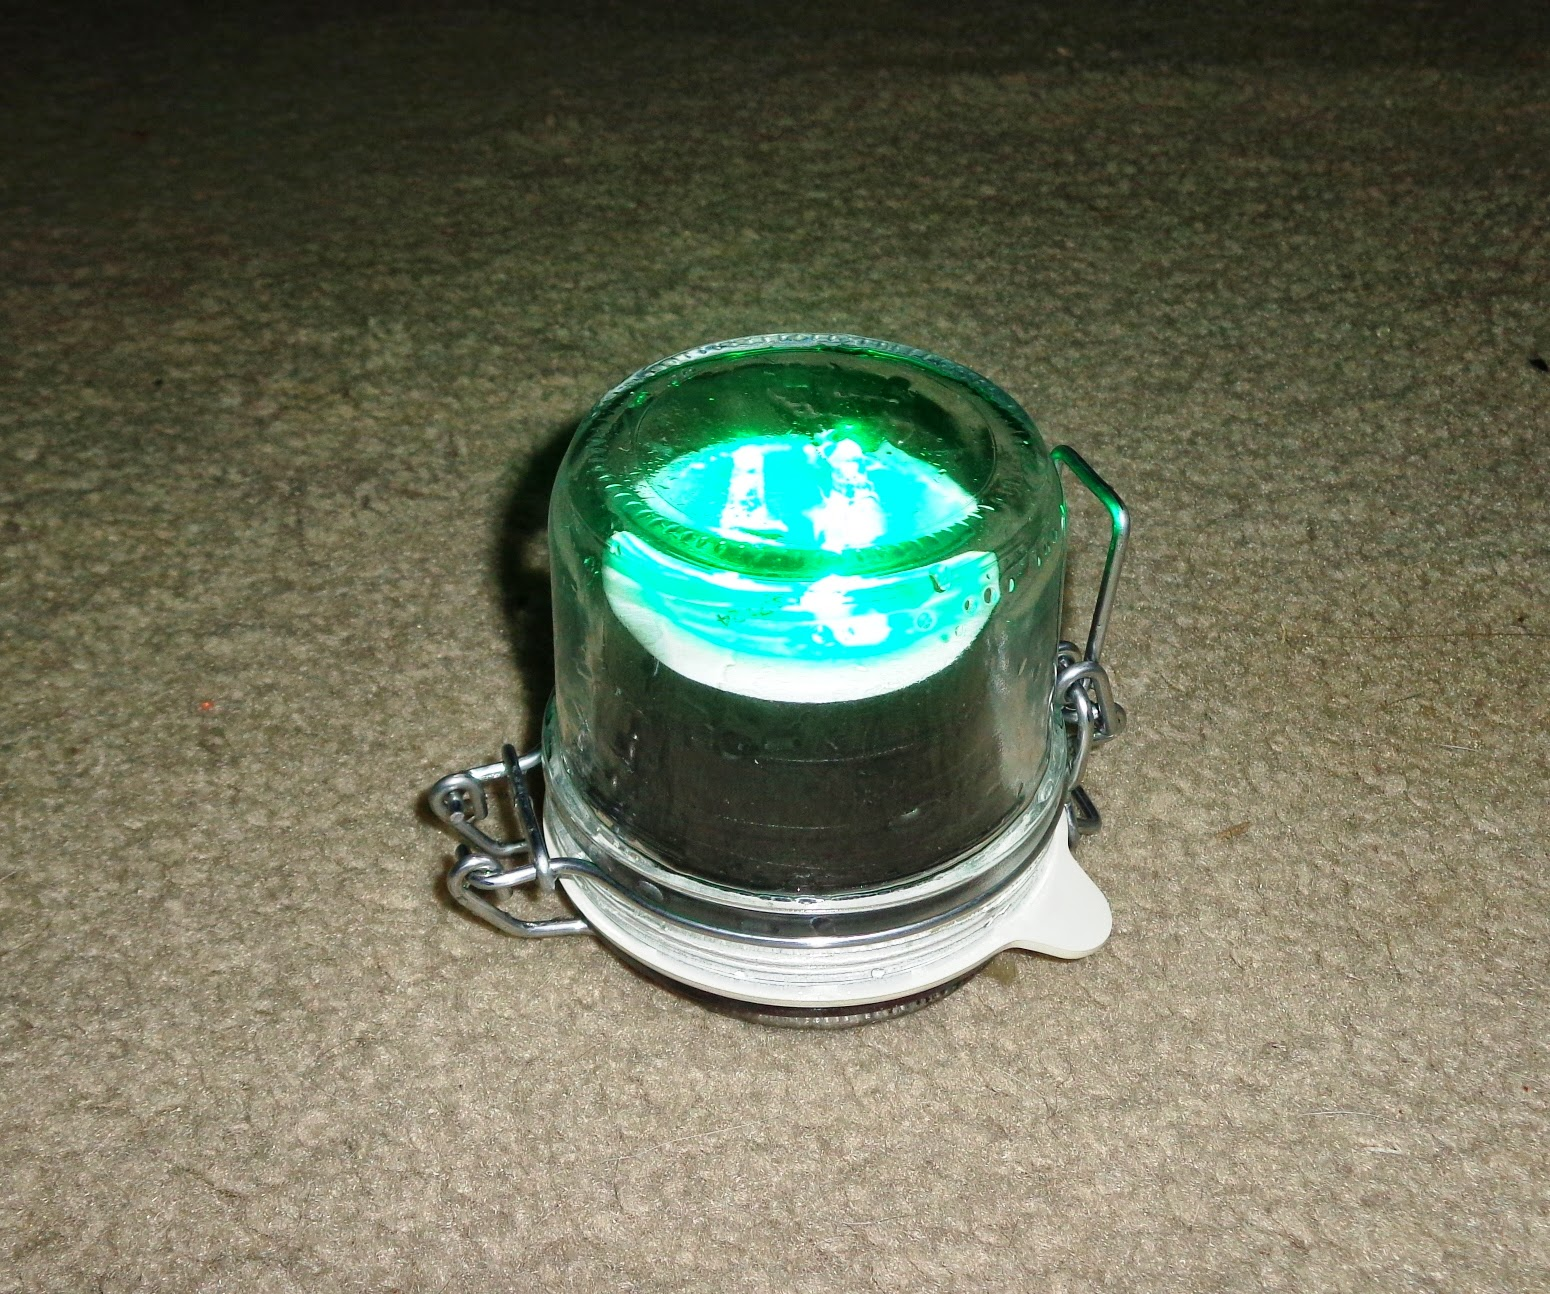 city of allen fishing: homemade green led fishing light - sealed, Reel Combo